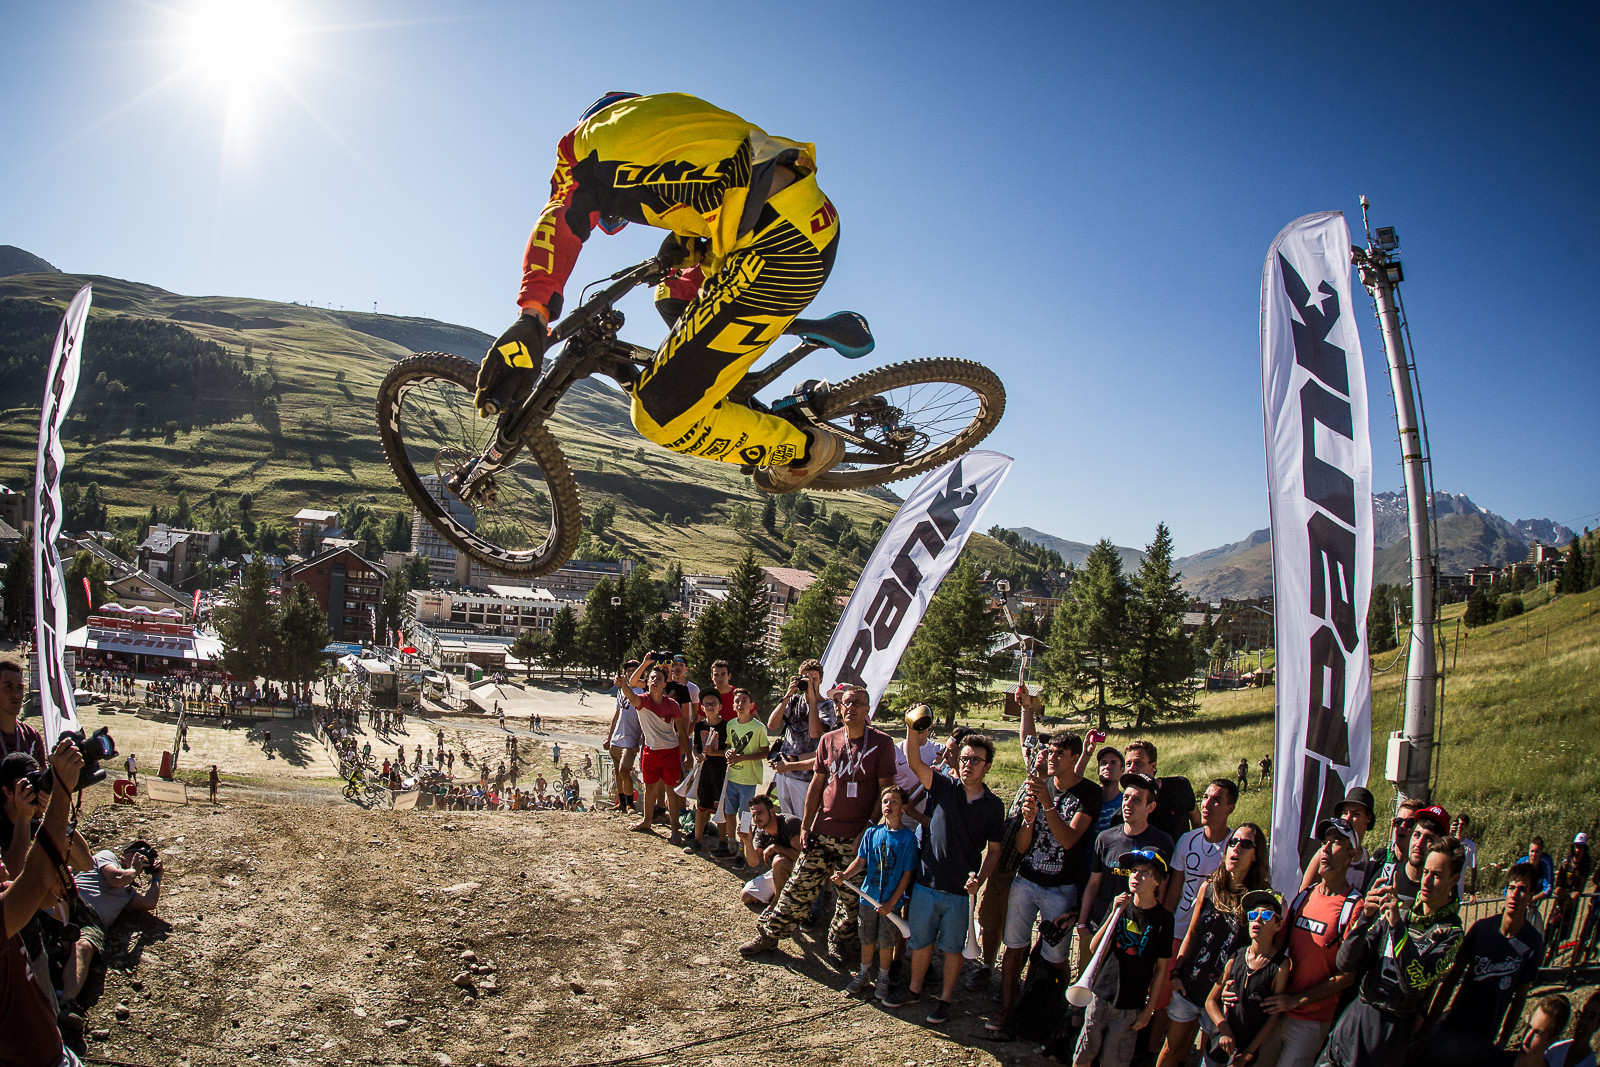 Finn Iles,, Whip Off European Champs, Crankworx L2A - Whip Off European Champs, Crankworx L2A - Mountain Biking Pictures - Vital MTB